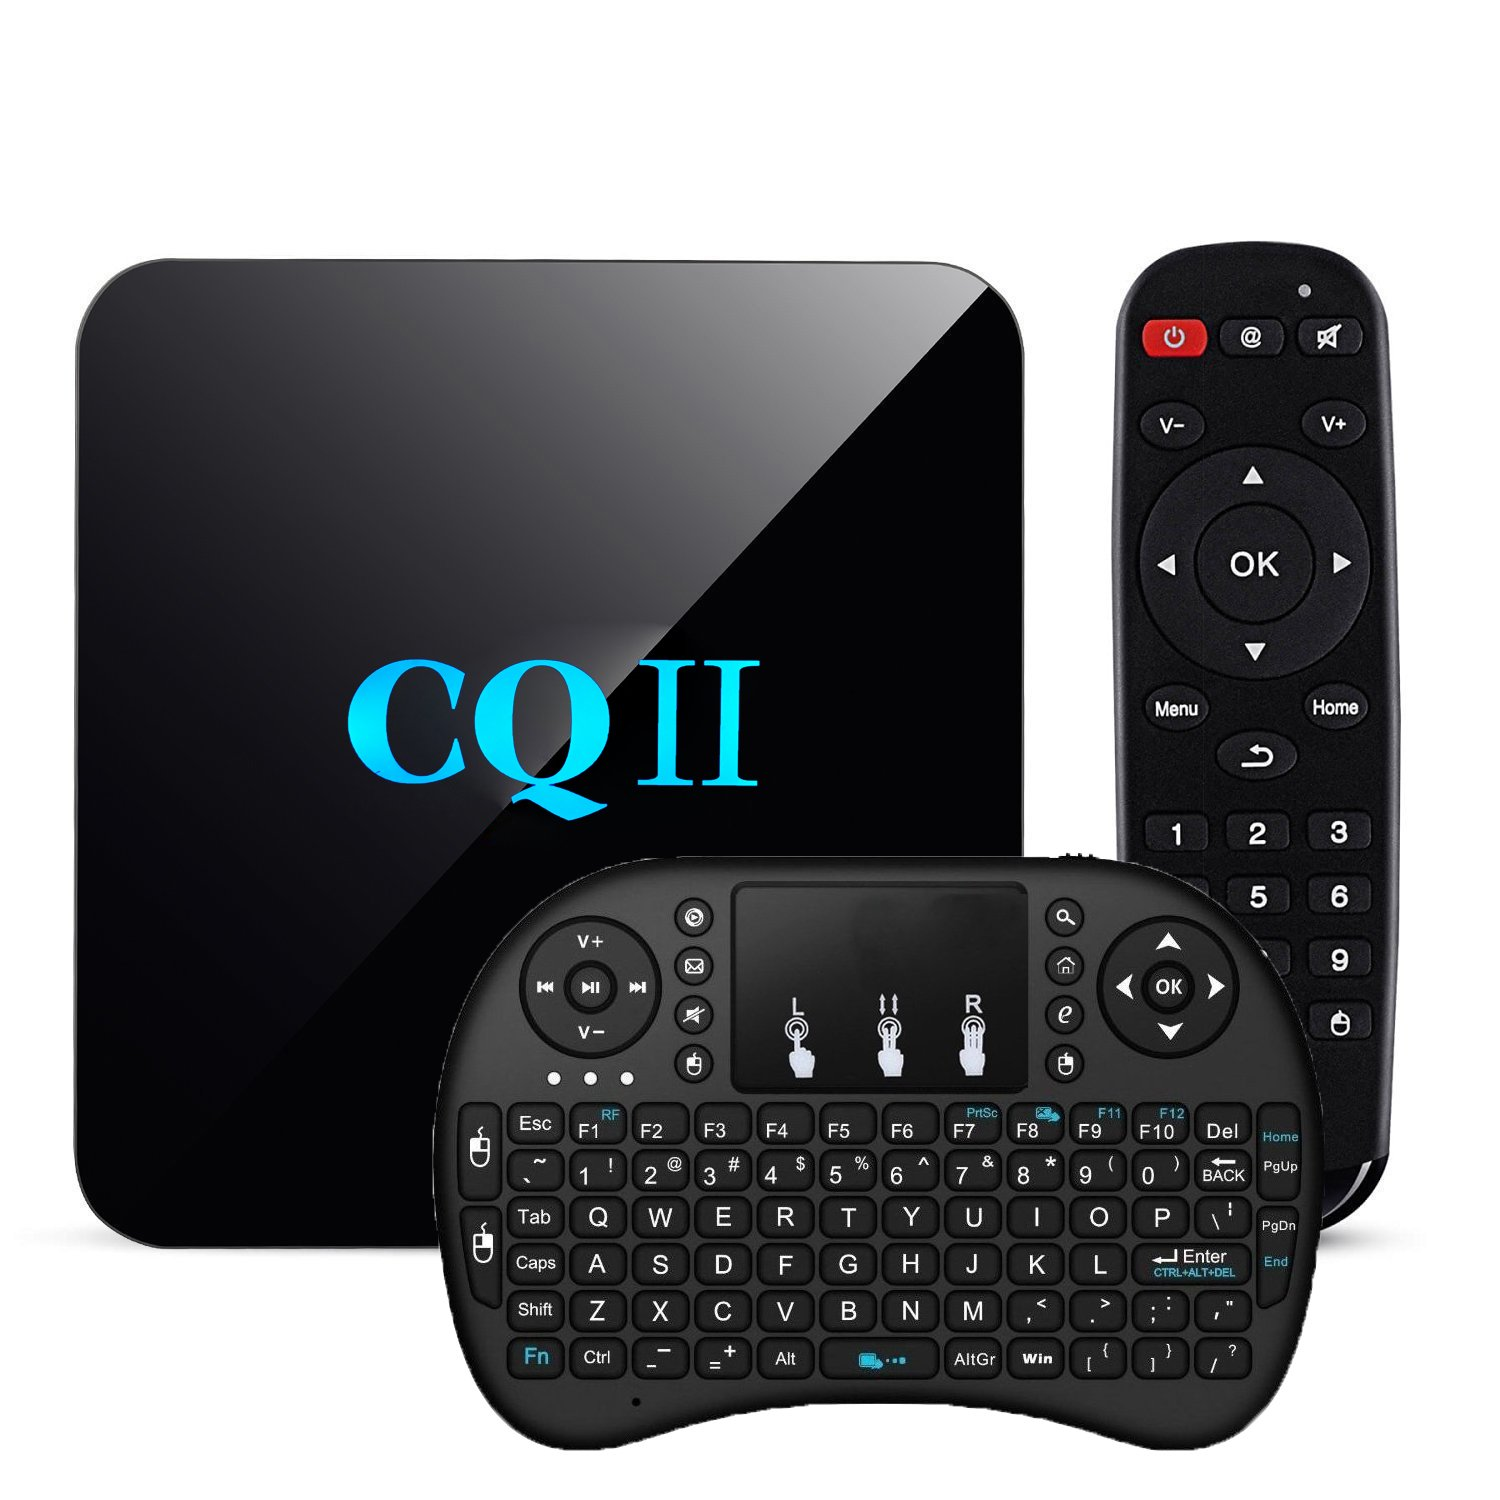 [Free Wireless Keyboard] TopYart Newset CQII Android 6.0 Amlogic S905X Quad Core 4K Ultra HD 1G RAM 8G ROM flash Smart TV Box + Wireless Keyboard by TopYart